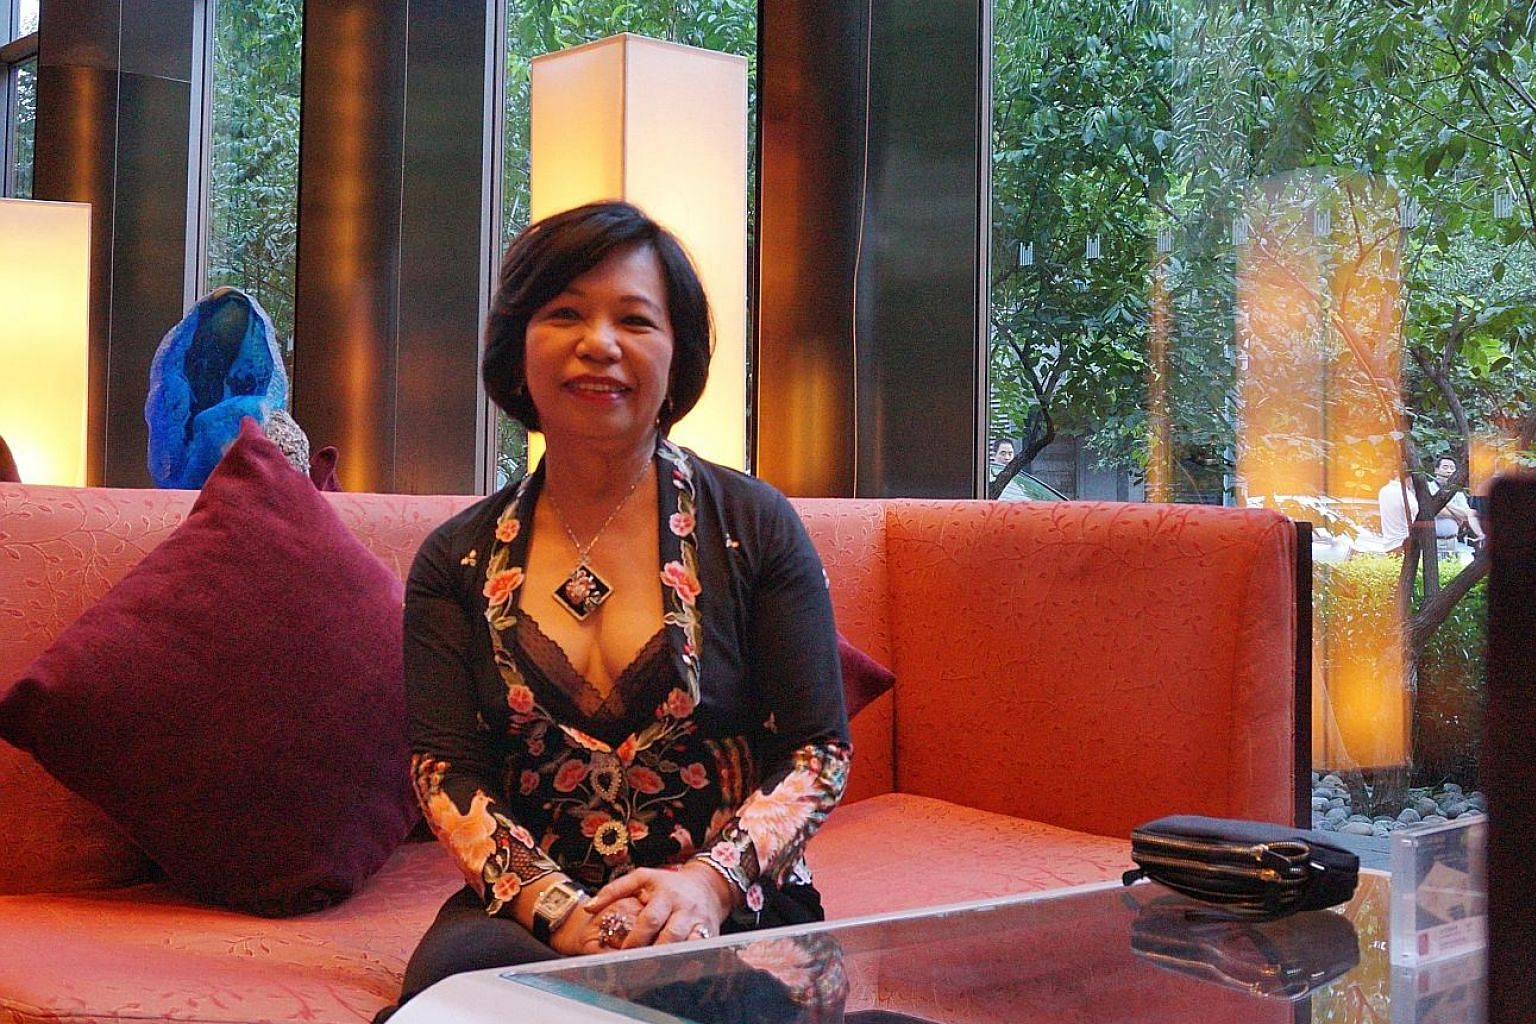 Beijing Smart Garments general manager Dorothy Seet recalls her own trial by fire - on arriving in China in 1994, she found that her family's textile business was bleeding money and staff. She later learnt the previous general manager had replicated